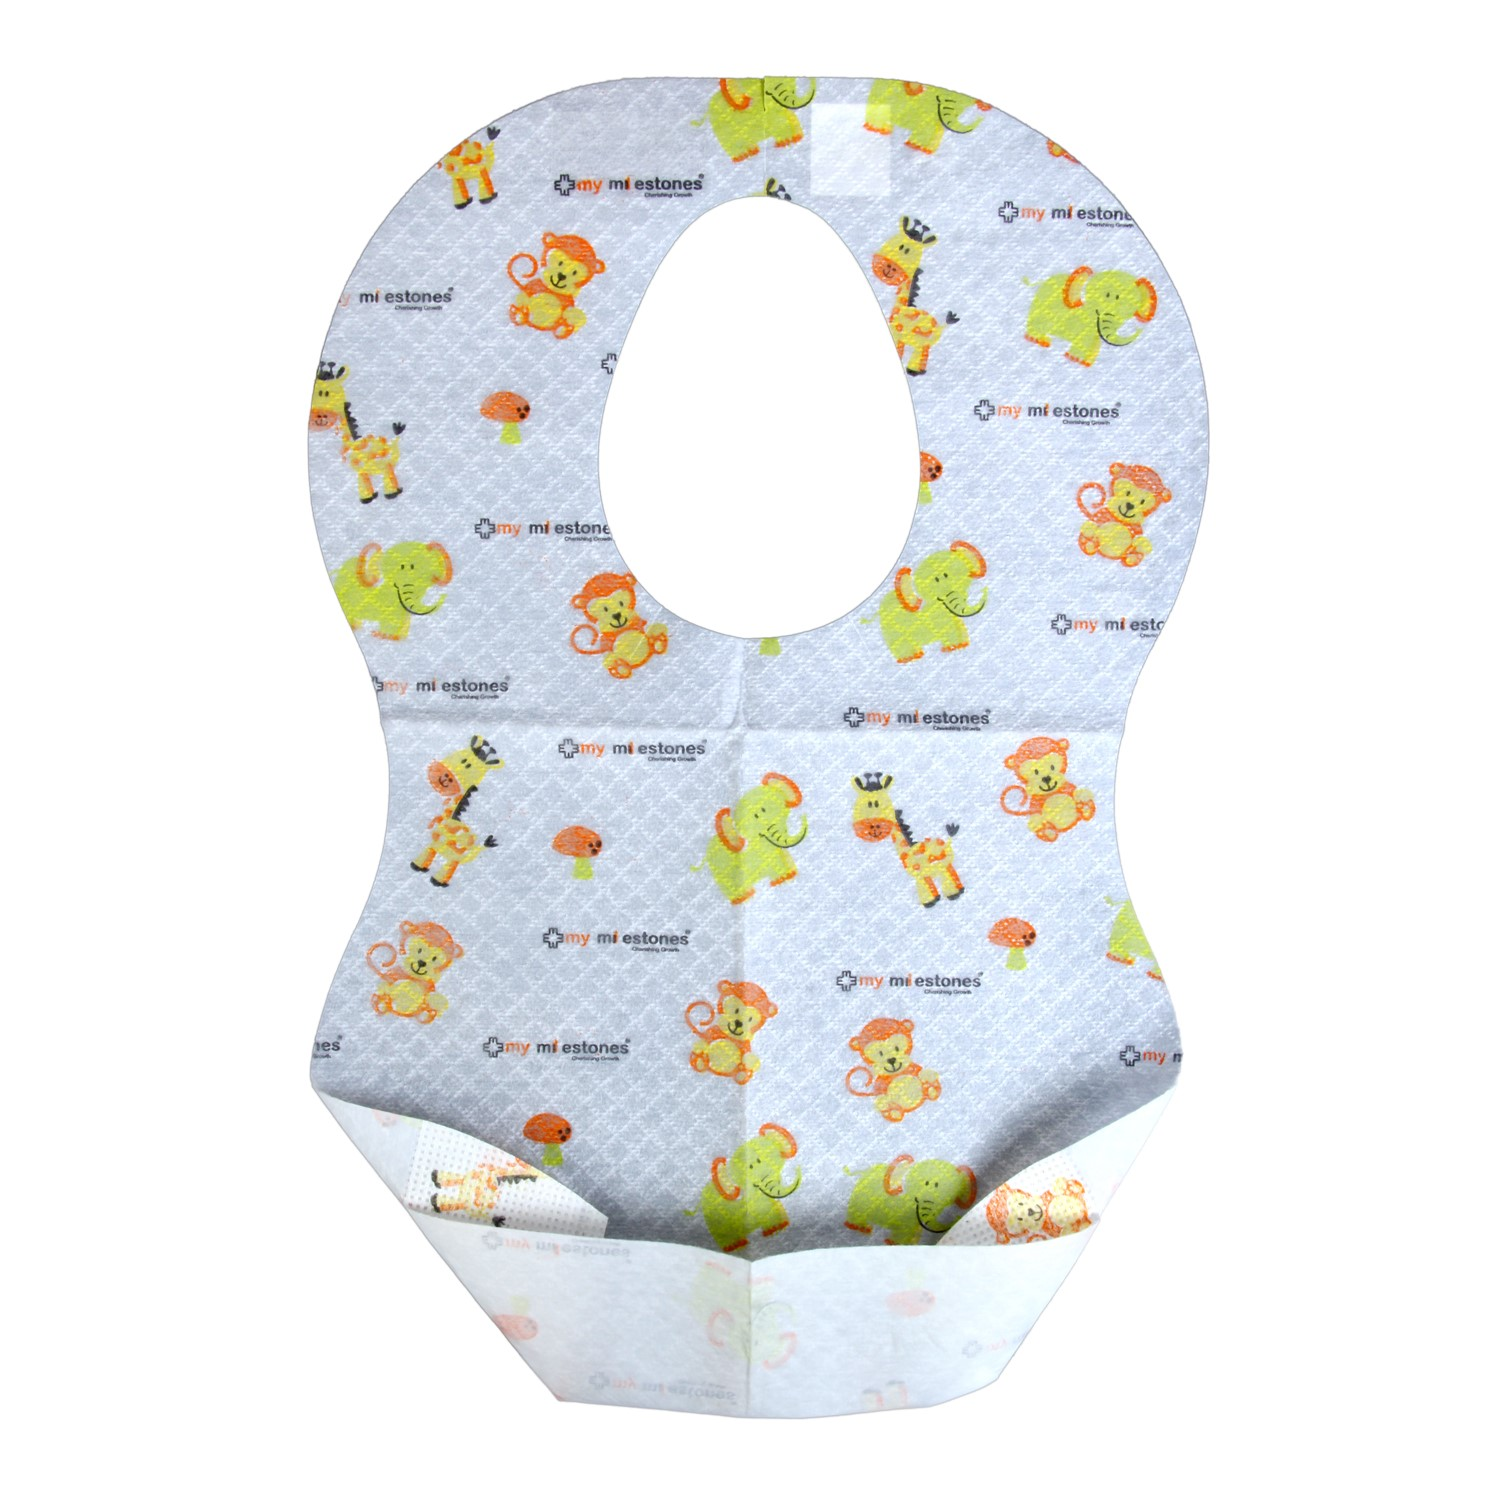 My Milestones Disposable Non-Woven Laminated Soaking-Proof Bibs with Crumb Catcher - Pack of 24